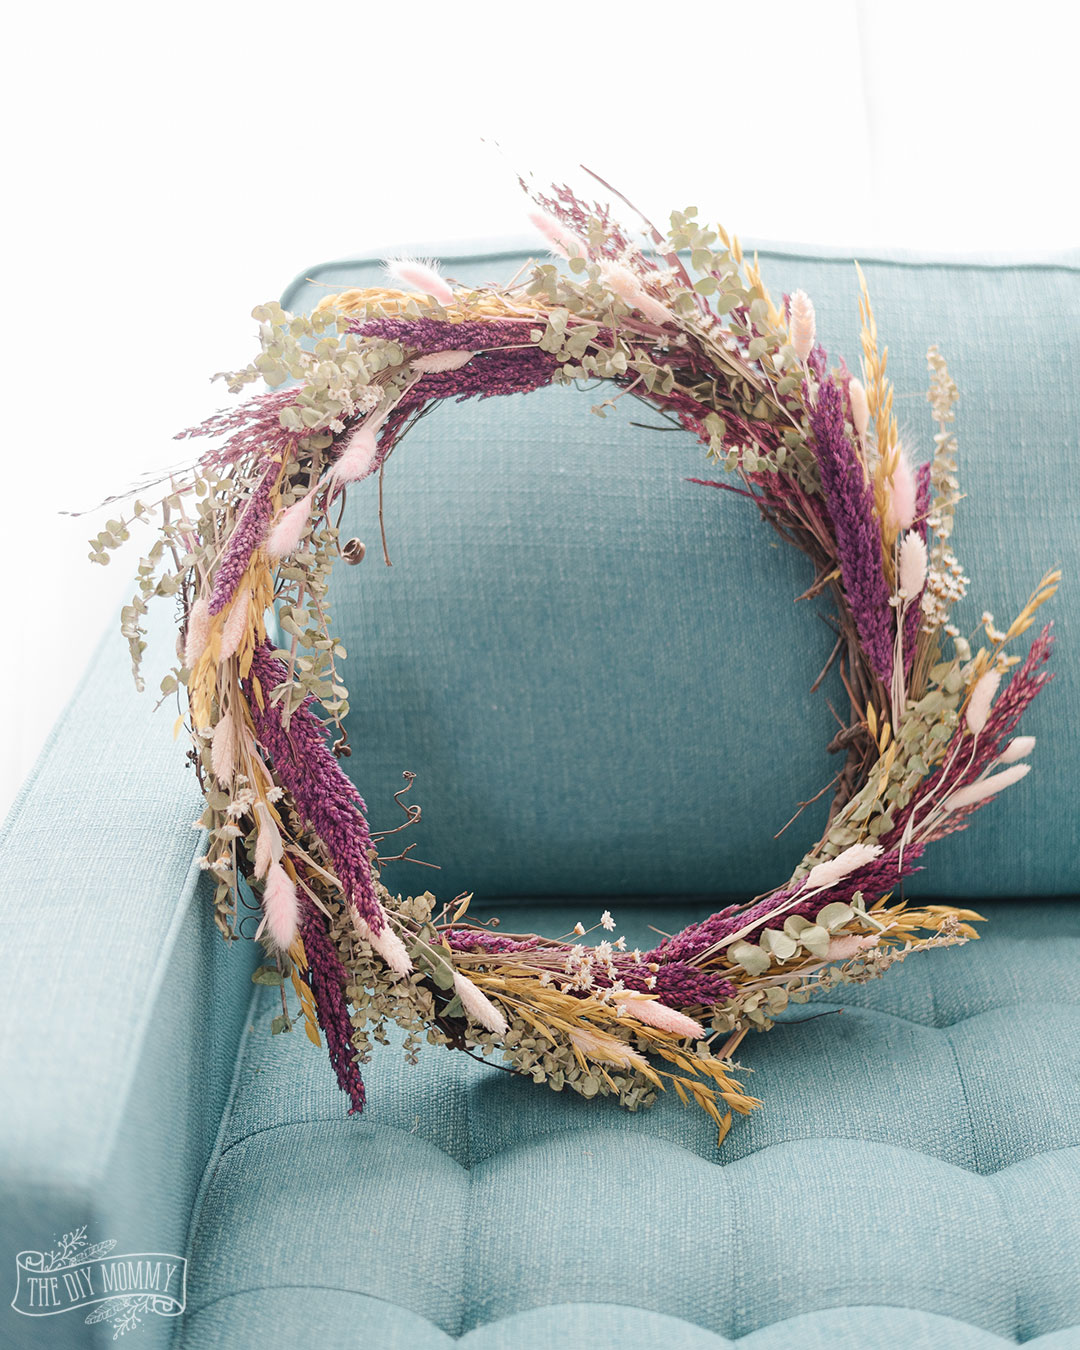 A dried floral wreath is a beautiful addition to your home decor. Making one is easy and fun! Here's how.